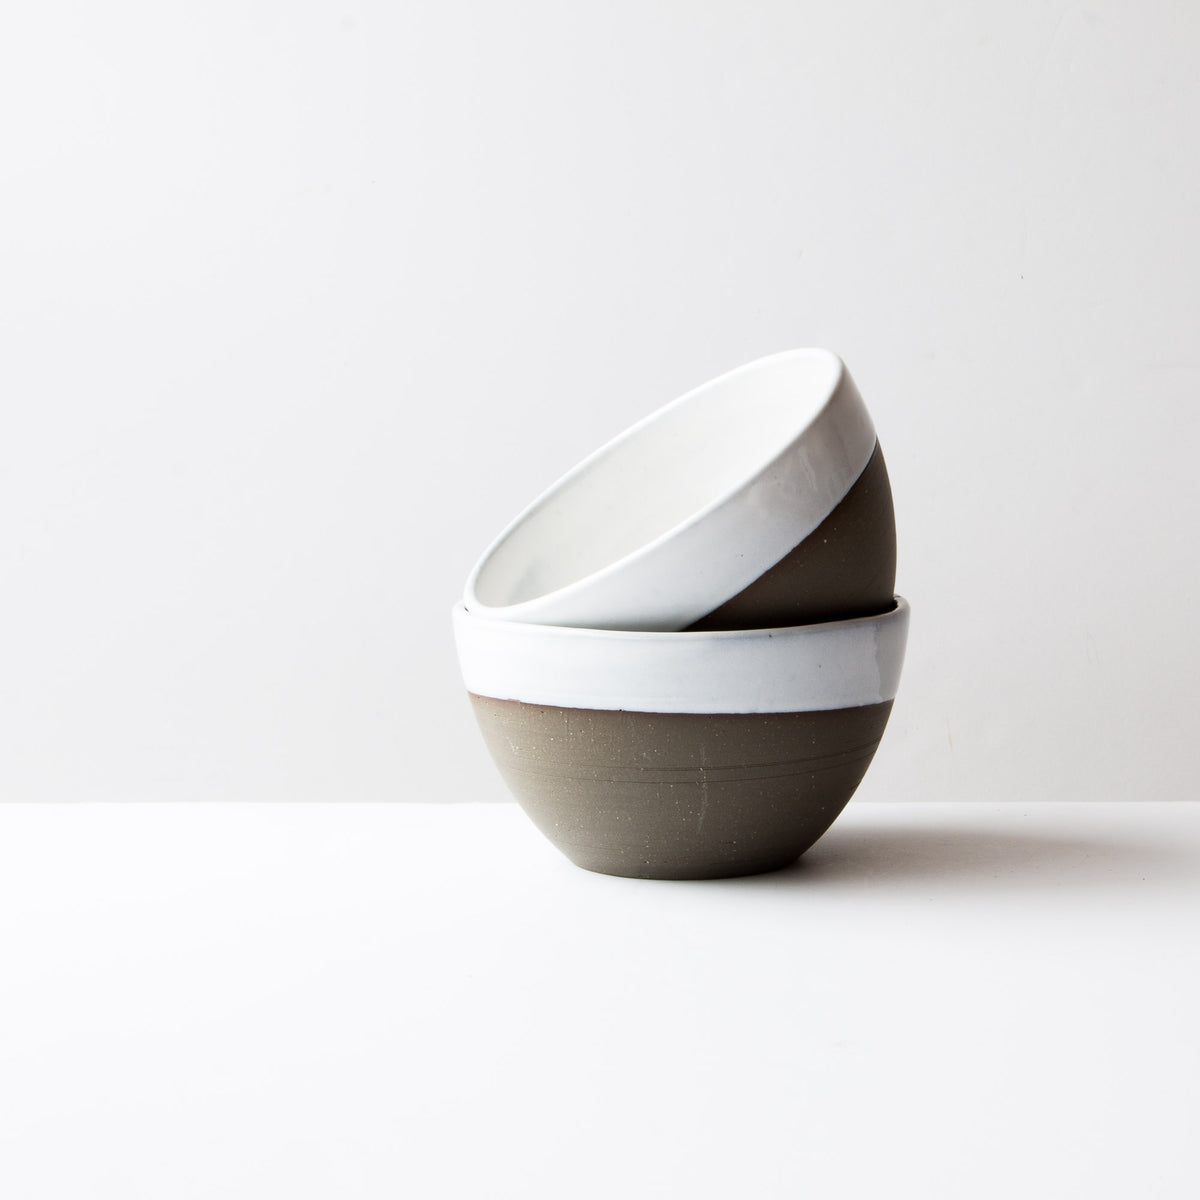 Grey Clay - Creamy White Glaze - Large Ceramic Soup Bowls - Handmade in Québec - Sold by Chic & Basta